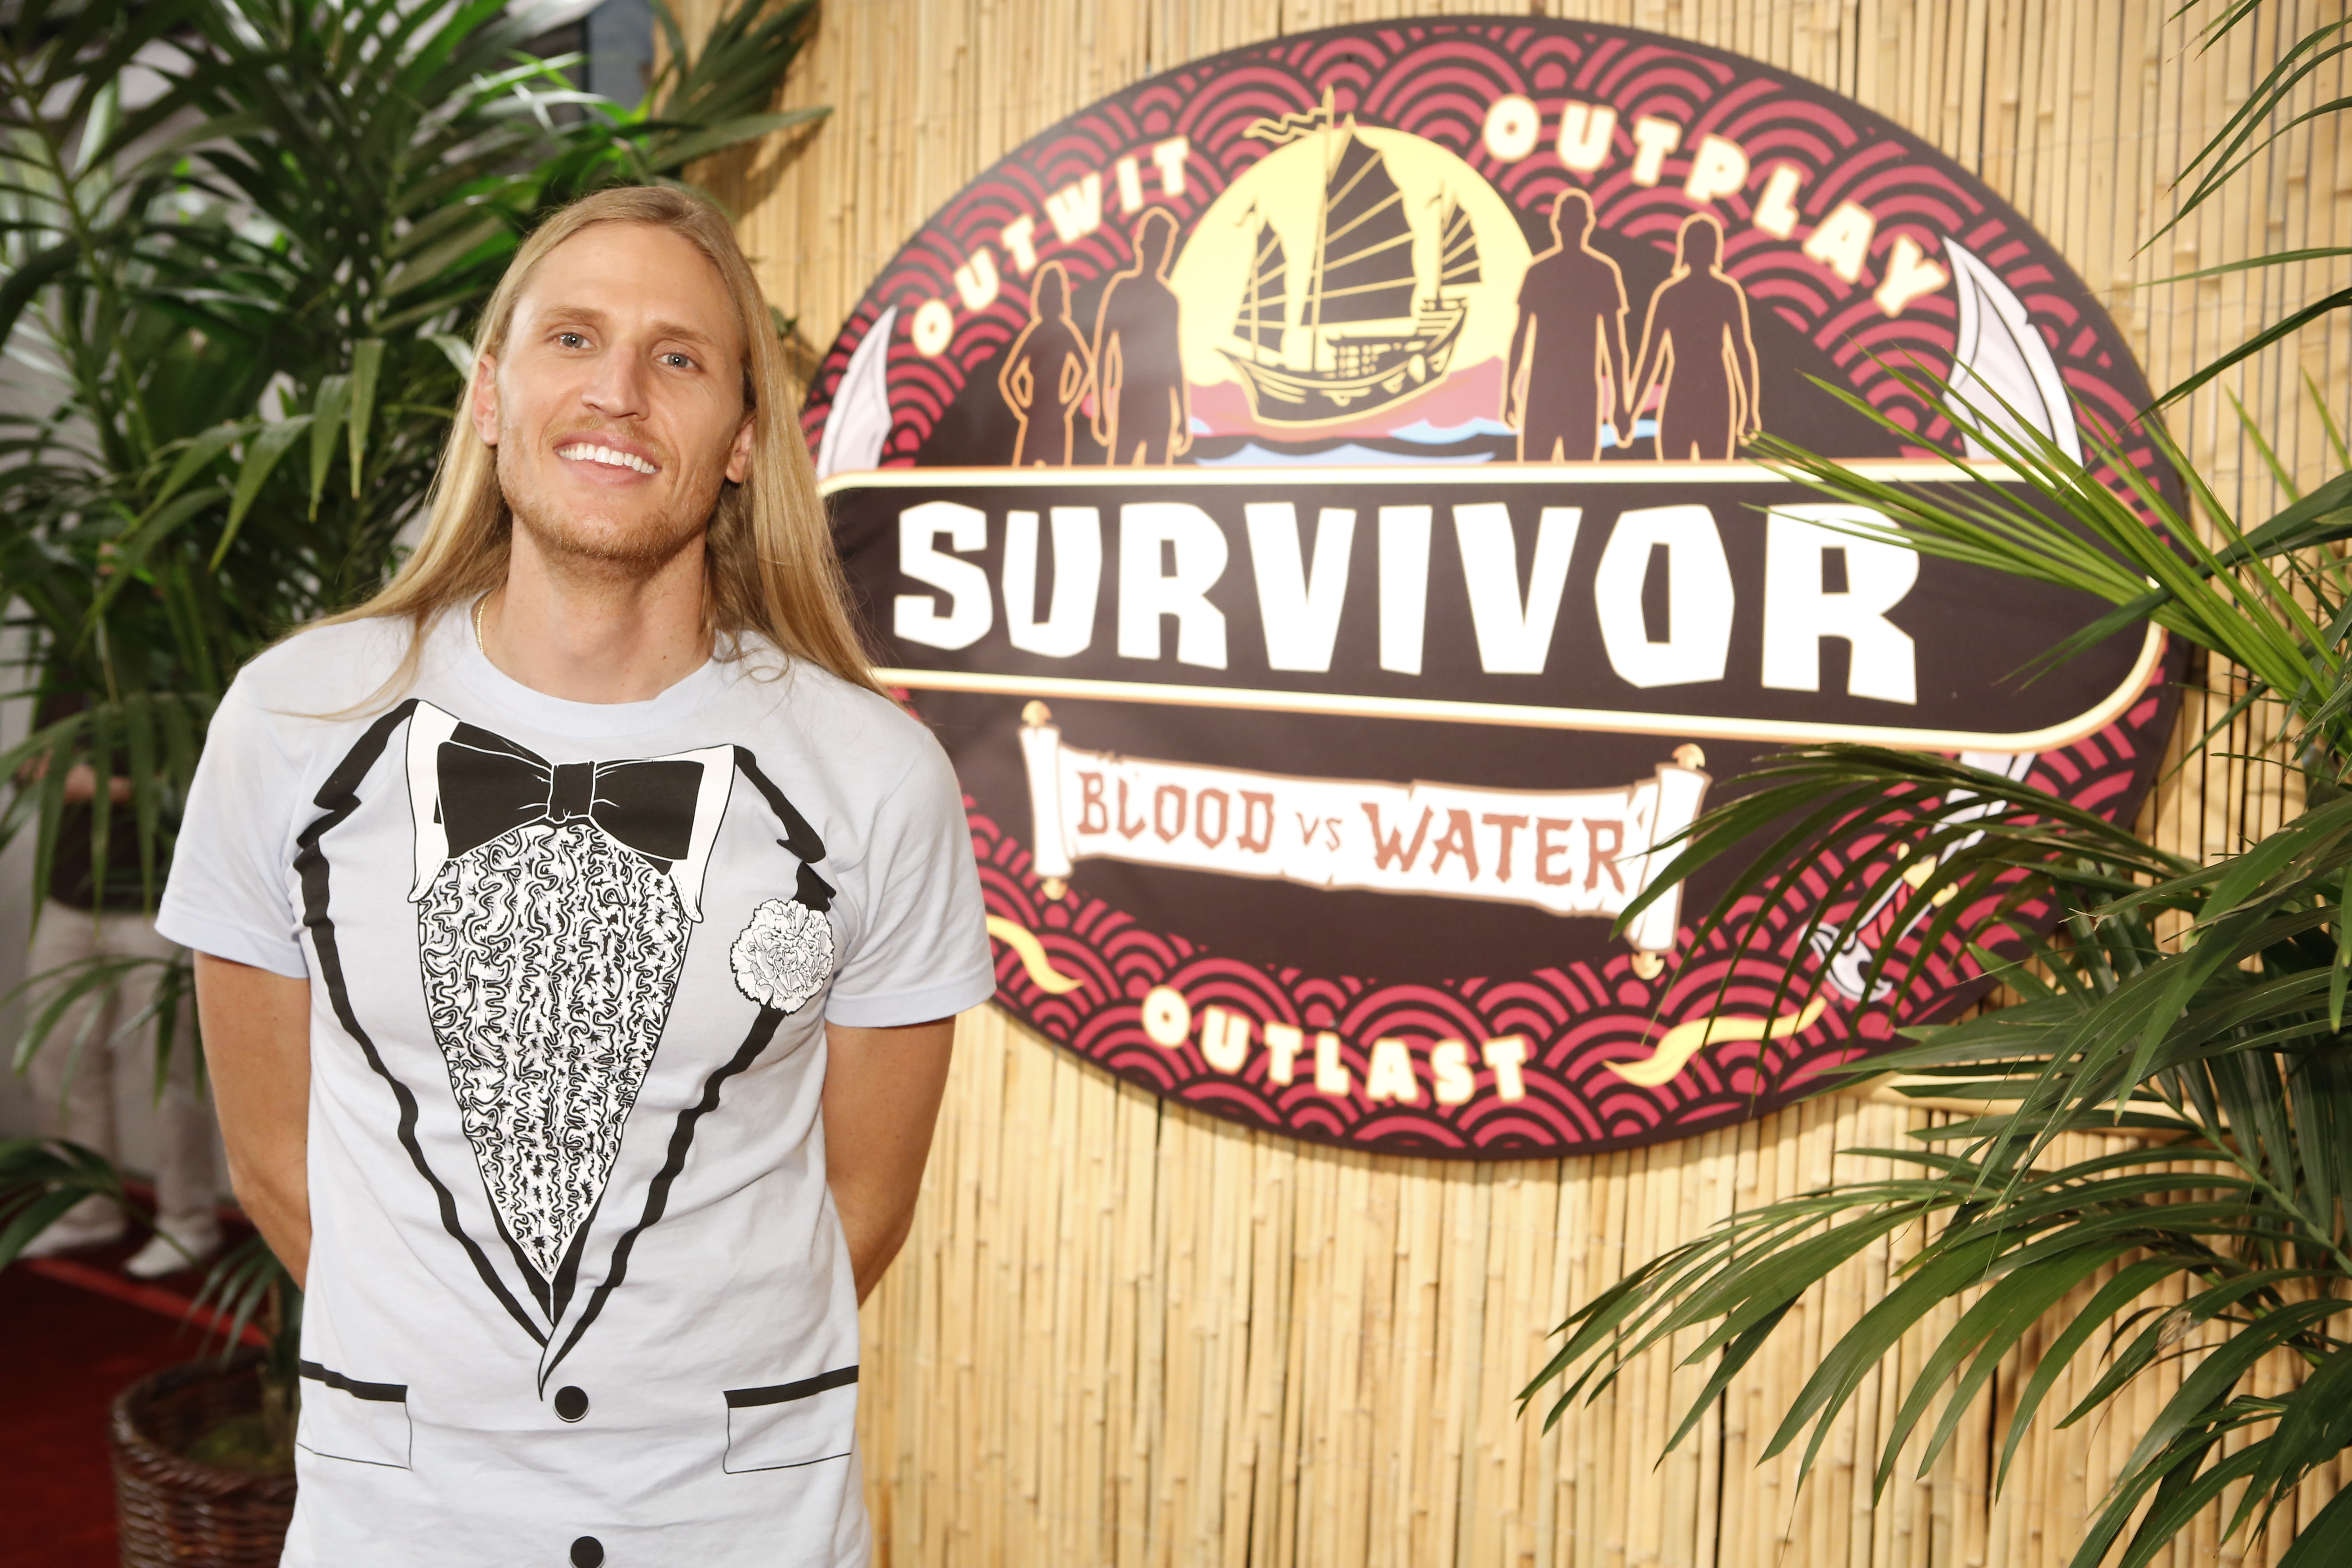 Tyson, winner of Survivor: Blood vs. Water